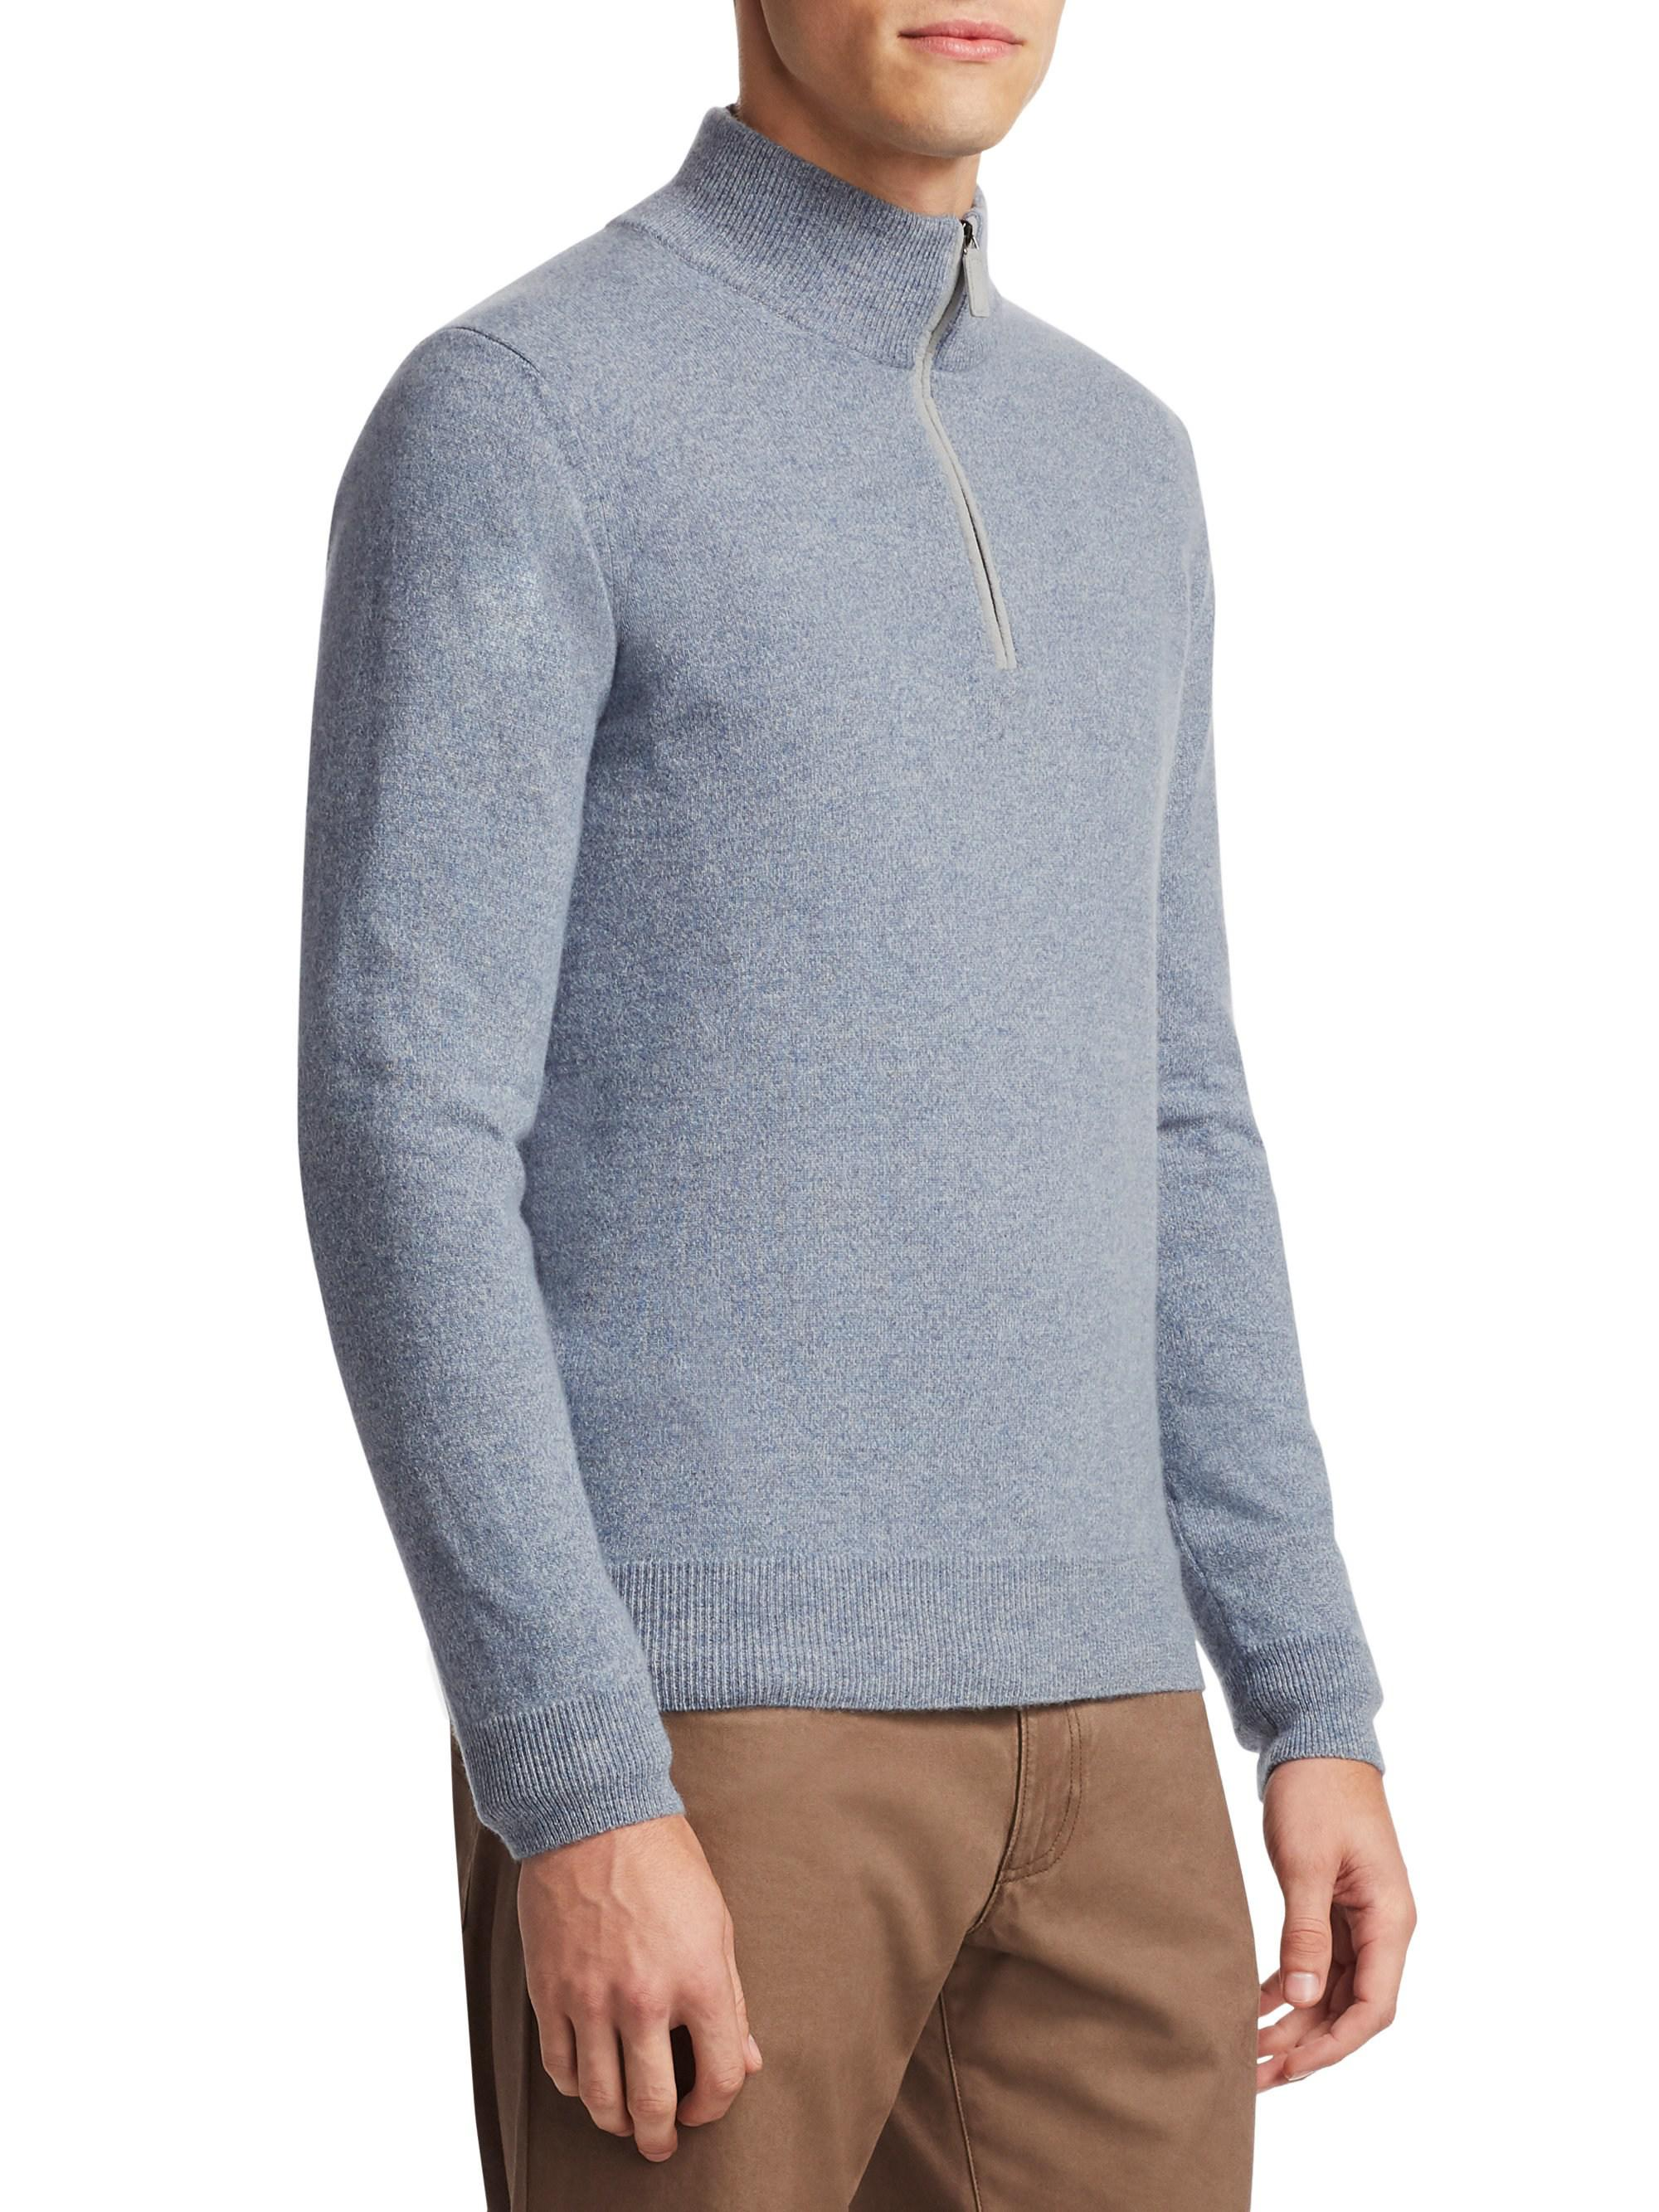 7eaafac78 Lyst - Saks Fifth Avenue Collection Half-zip Cashmere Sweater in ...